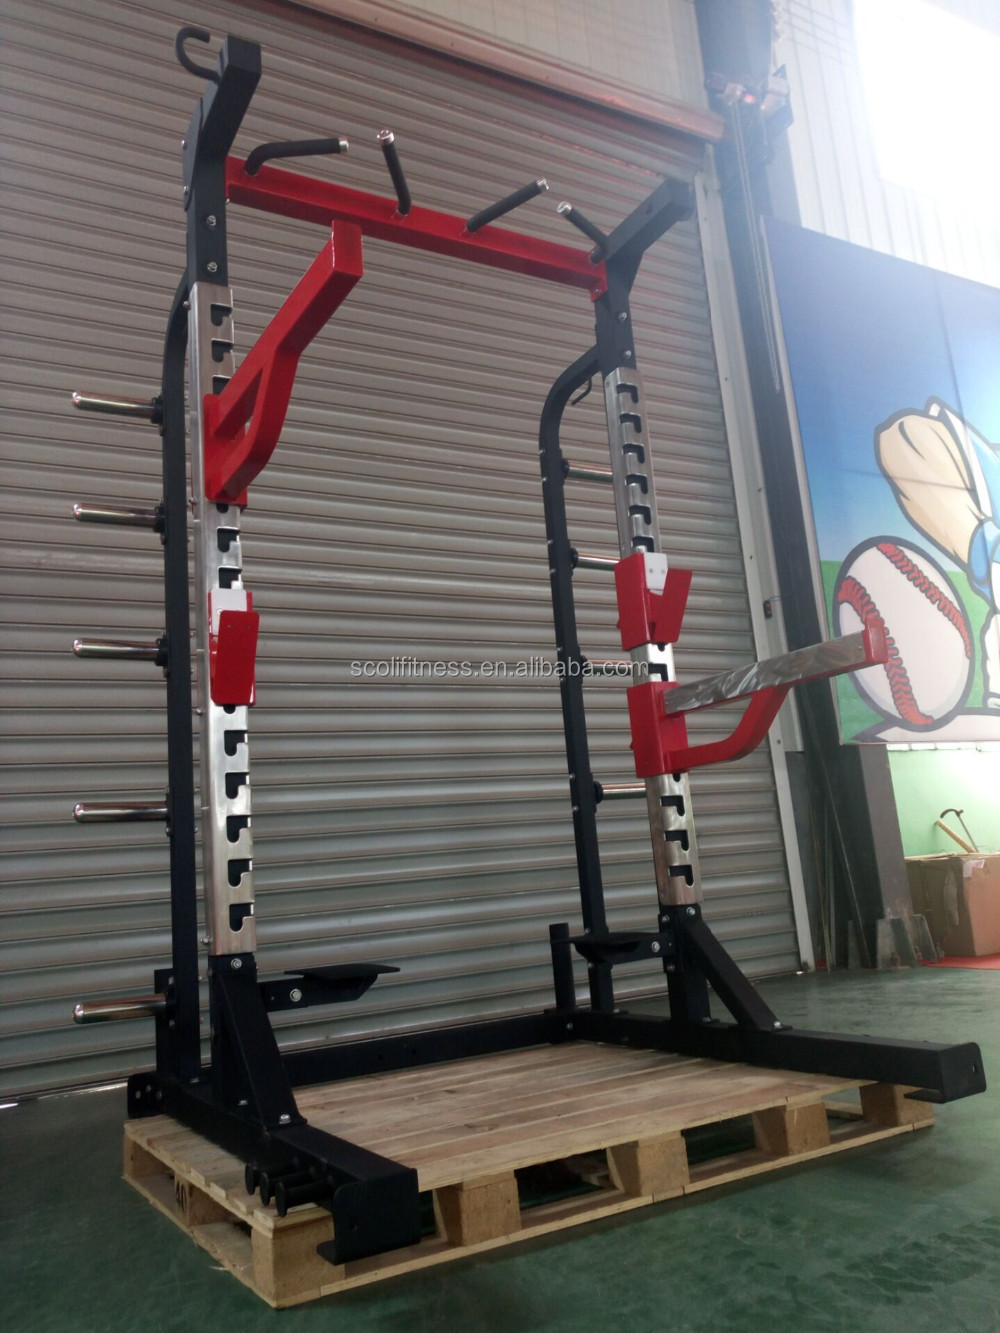 2016 Hot Sale Hammer Strength Half Rack Power Rack H72